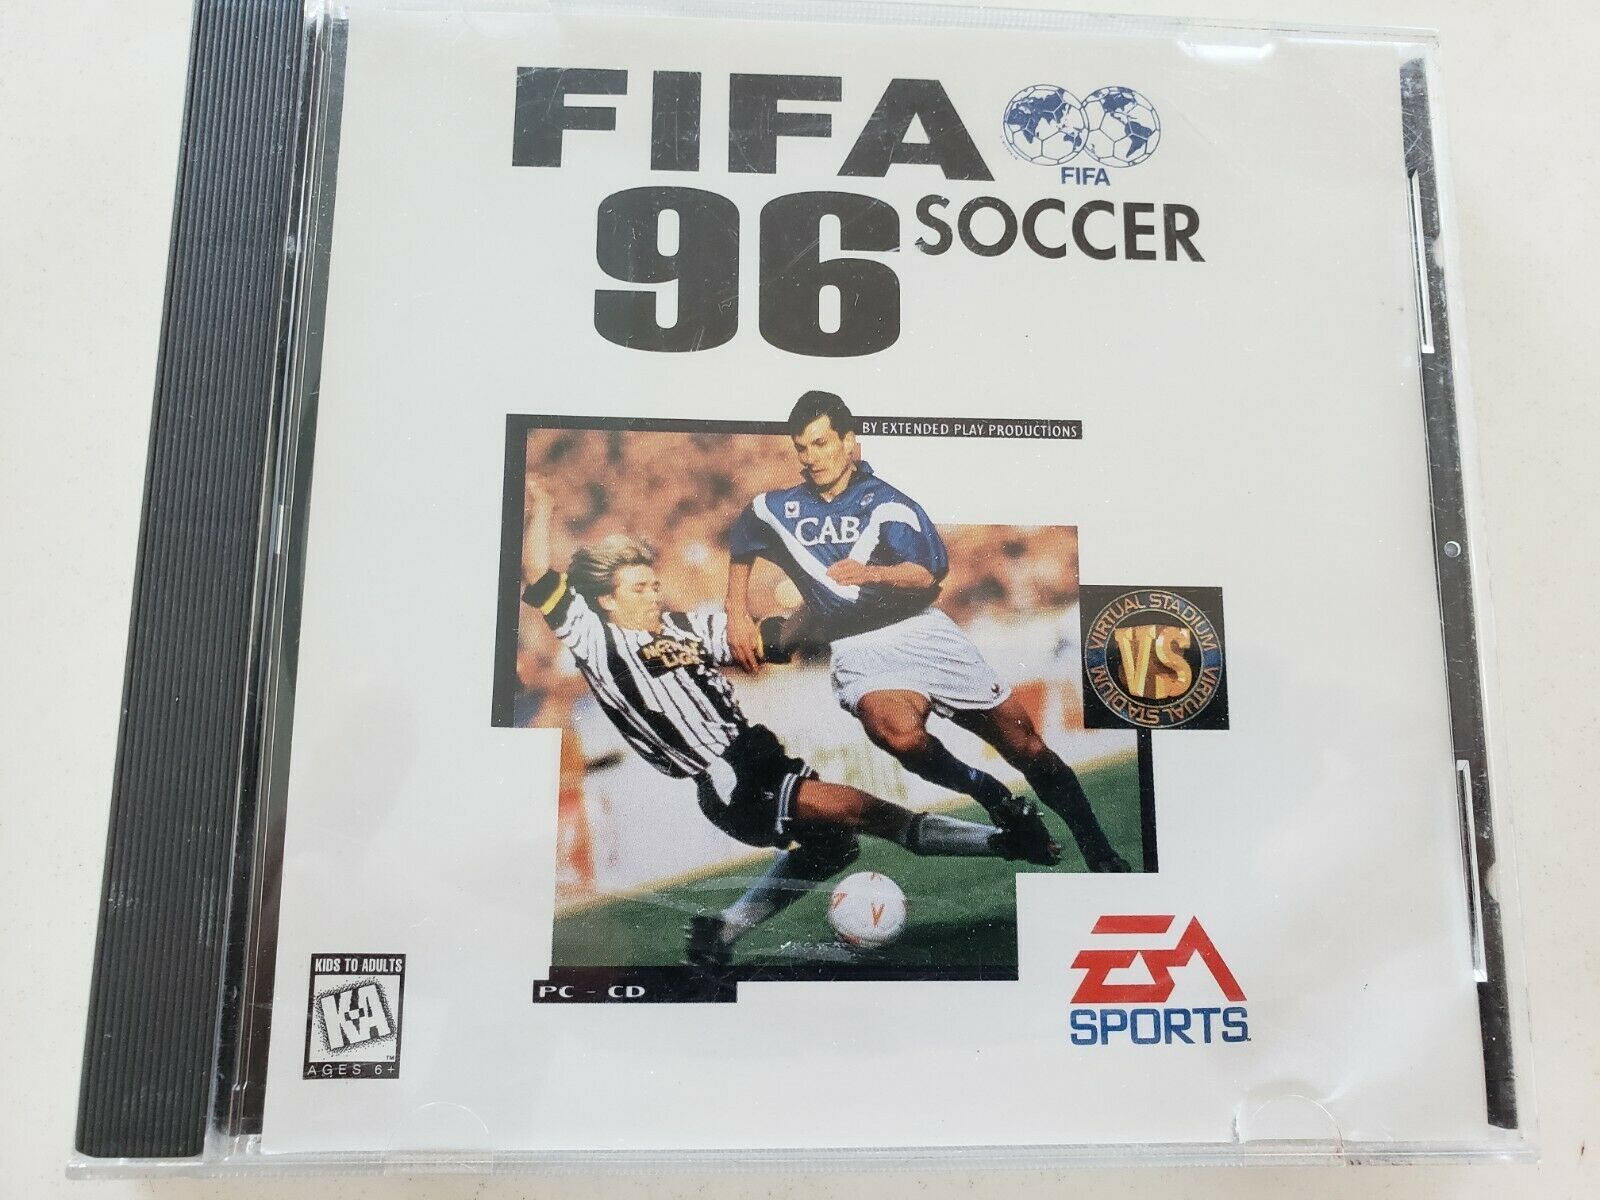 FIFA Soccer 96 1995 Computer Video Game PC CD-ROM EA Sports 1996 Electronic Arts